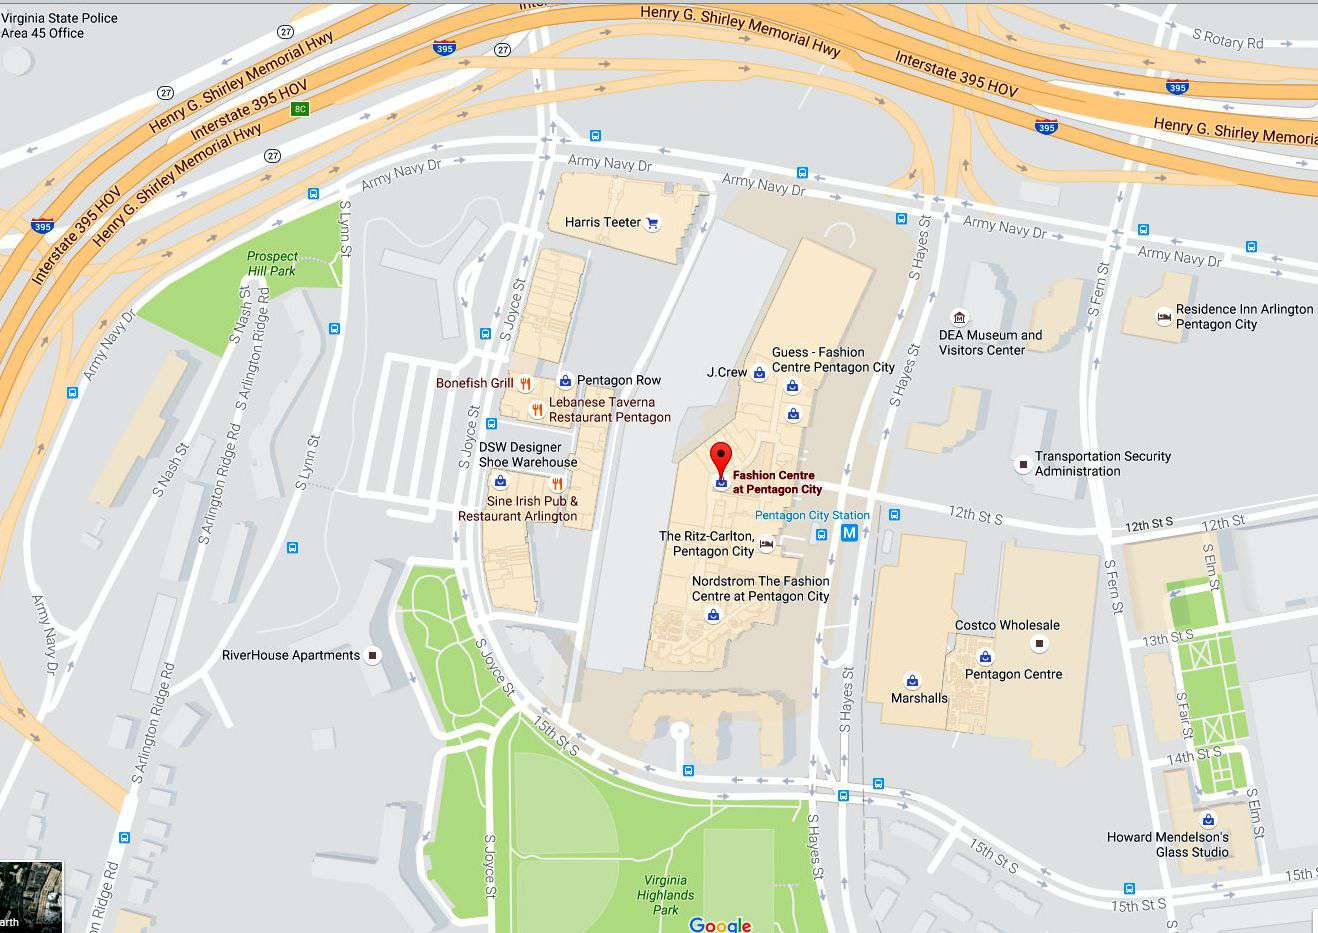 Maps and Directions to The Pentagon & Pentagon City Mall Map Of Pentagon Dc on pentagon blueprints, pentagon explosion, pentagon police officer, pentagon building before 9 11, pentagon attack, pentagon diagram, pentagon flag, pentagon building history, pentagon missile,